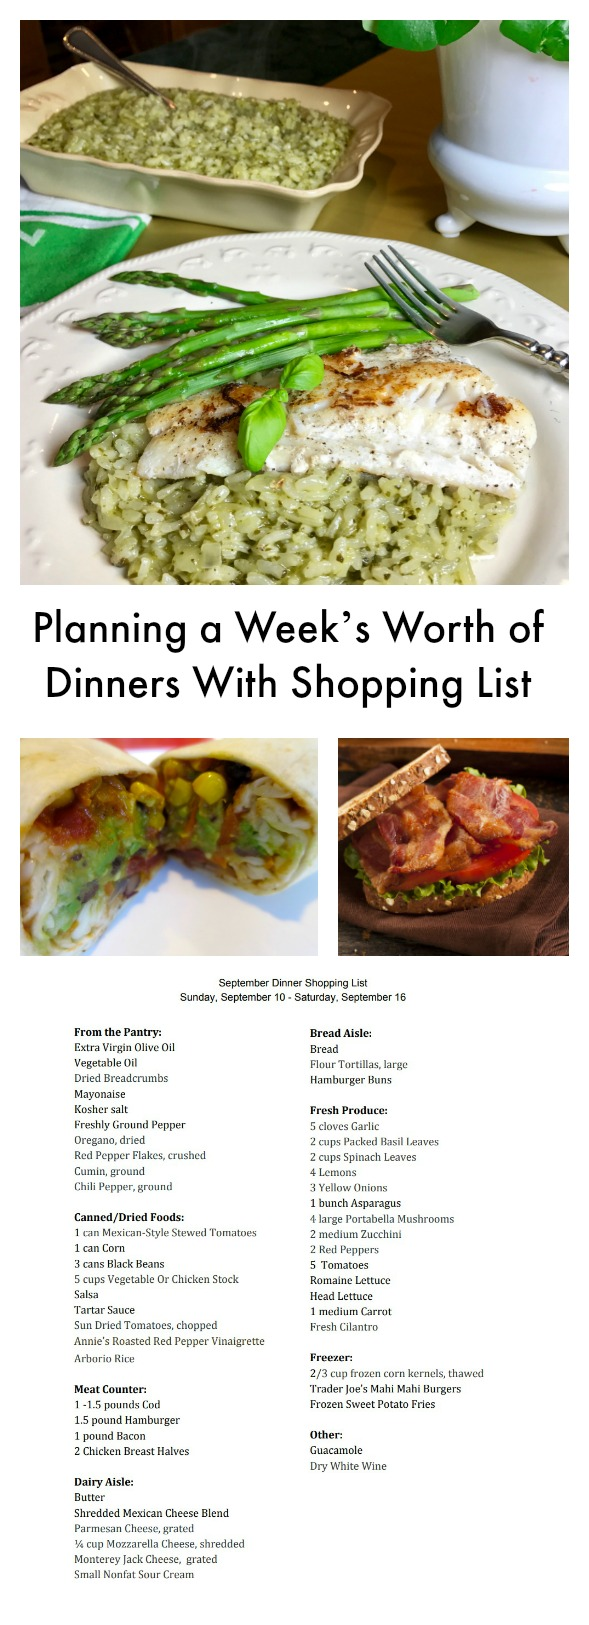 Planning a Week's Worth of Dinners With Shopping List makes your meal planning this week super easy. Many fast dinners are on the menu this week.